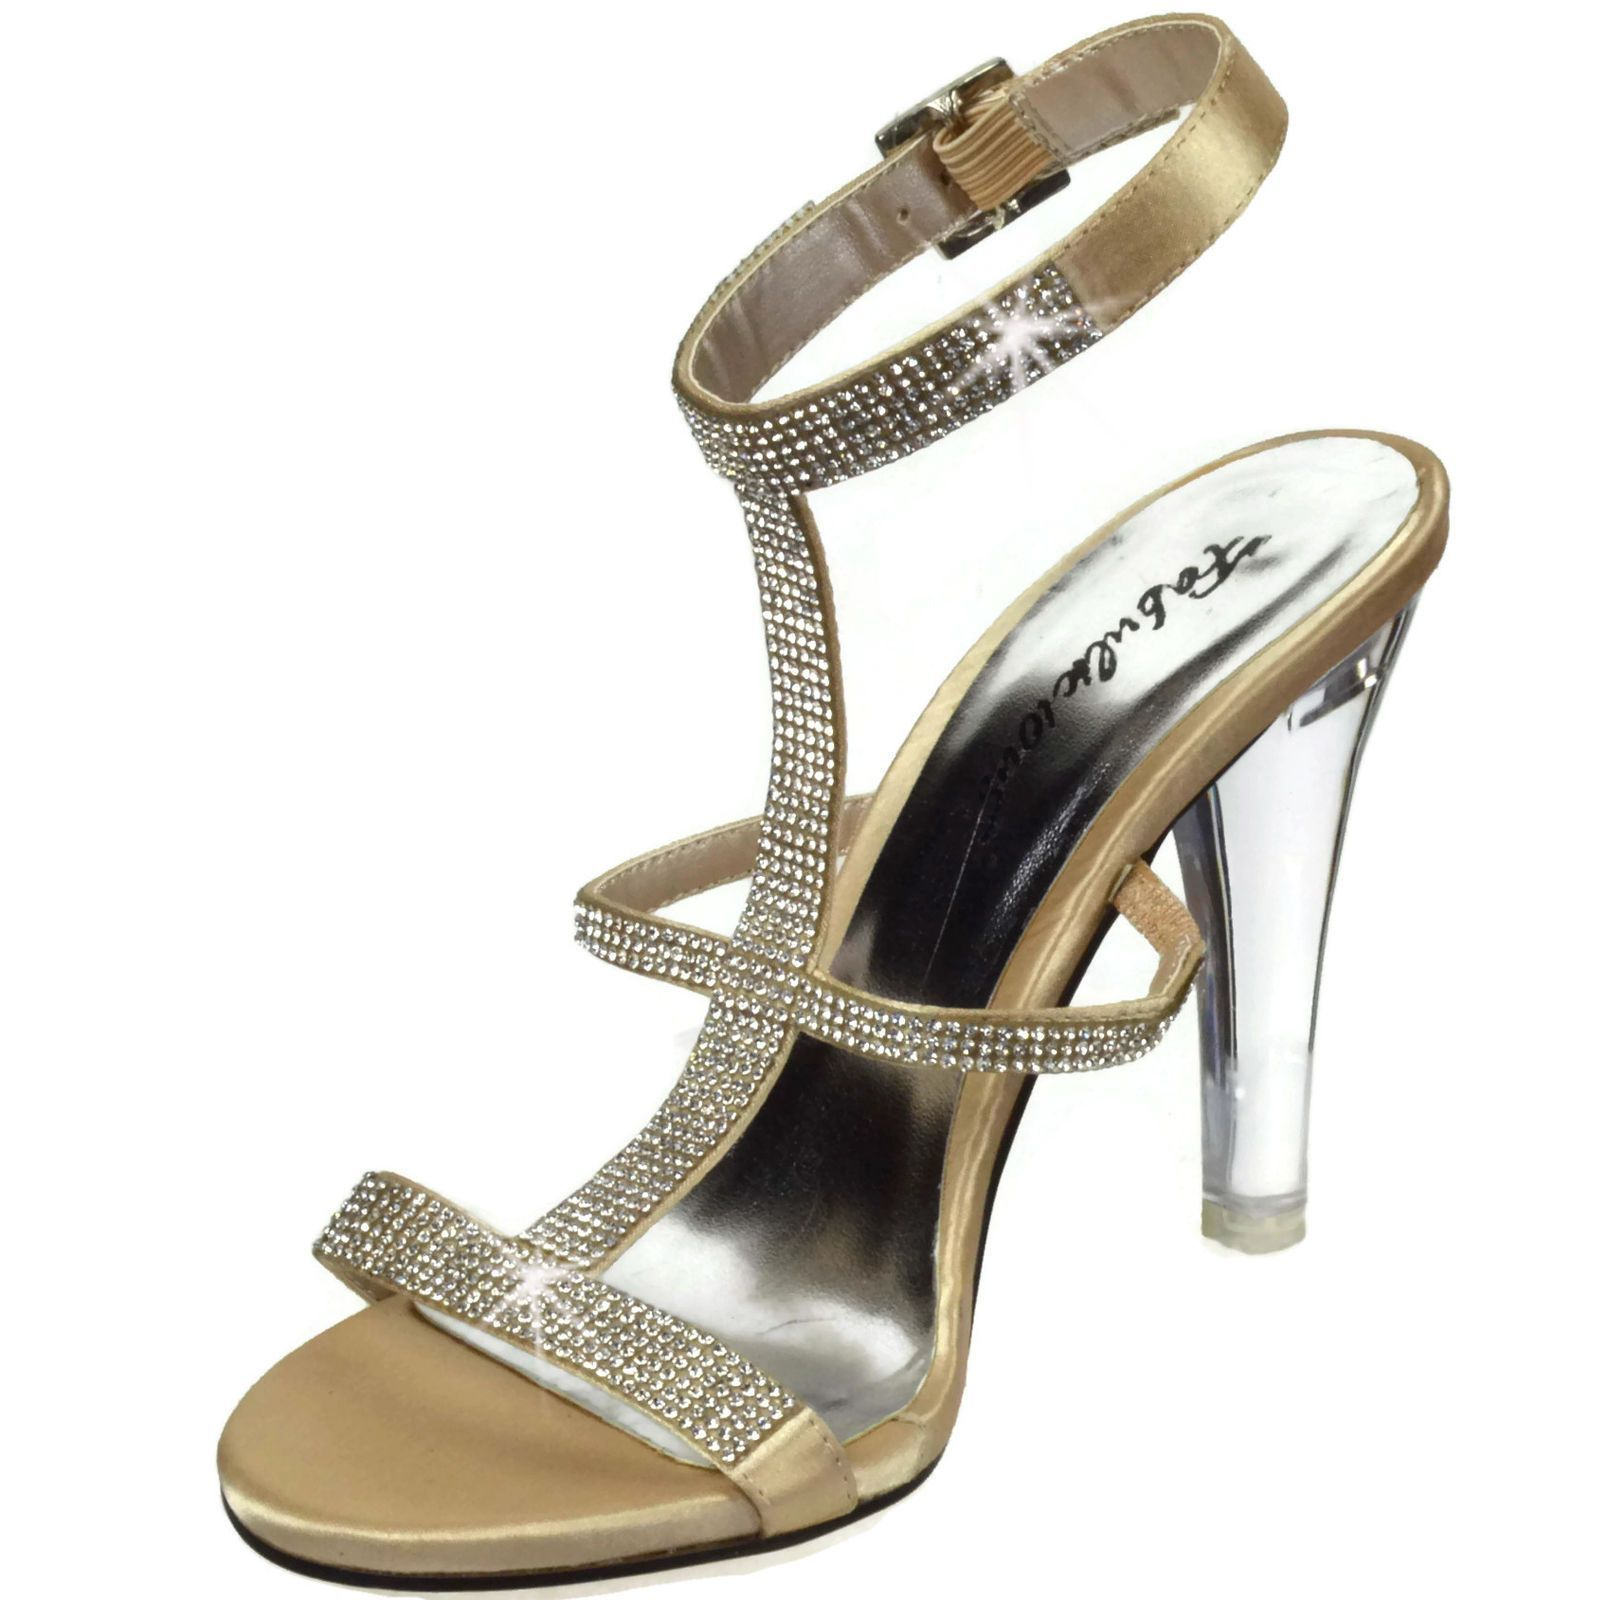 Fabulicious Womens Heels Satin Sandals Rhinestones Clearly-418 Champagne